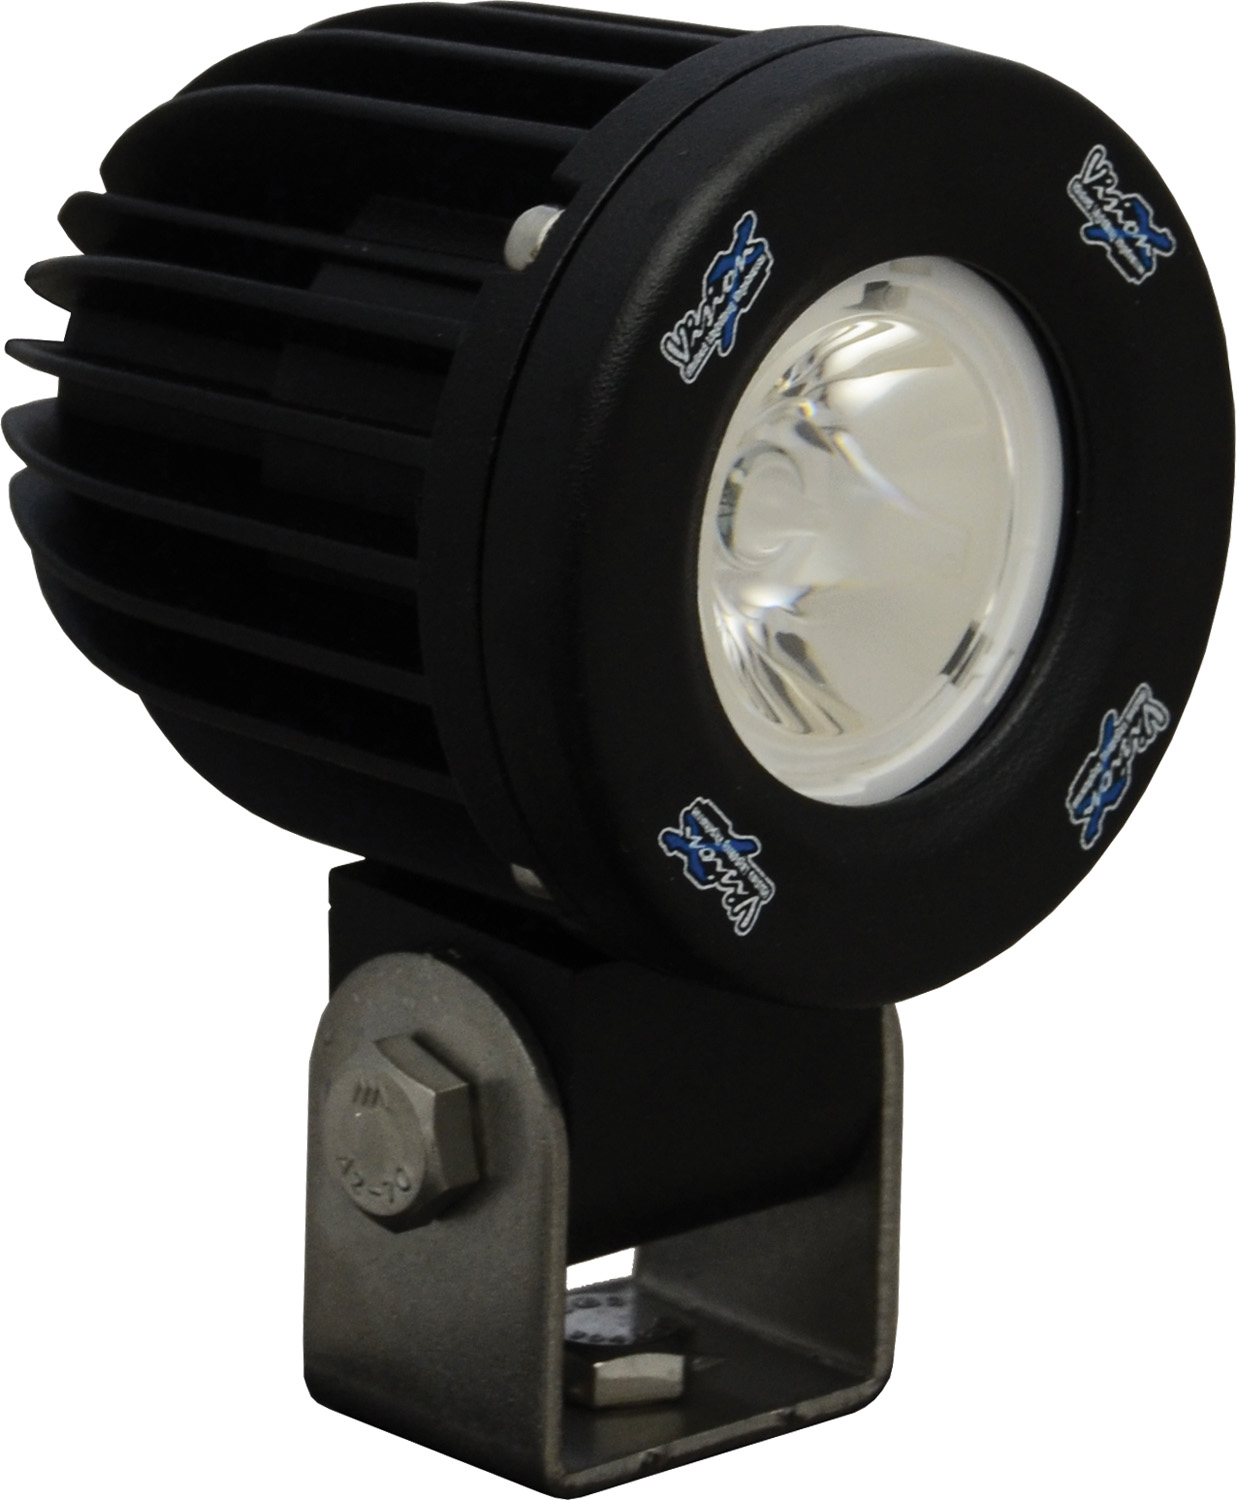 "2"" SOLSTICE SOLO PRIME BLACK 10W LED 10ç NARROW"